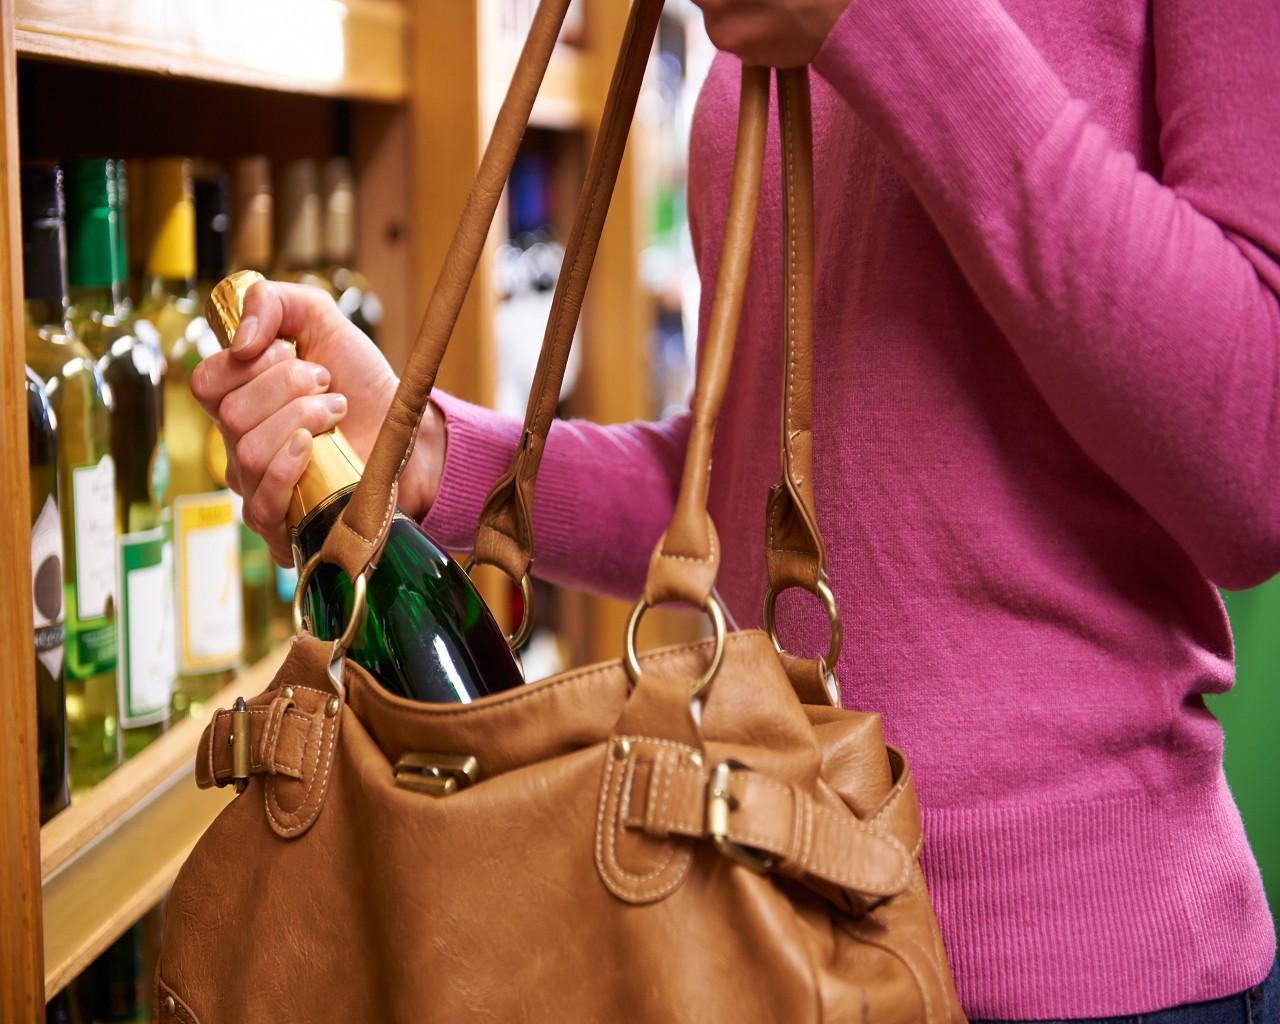 How to Prevent Shoplifting